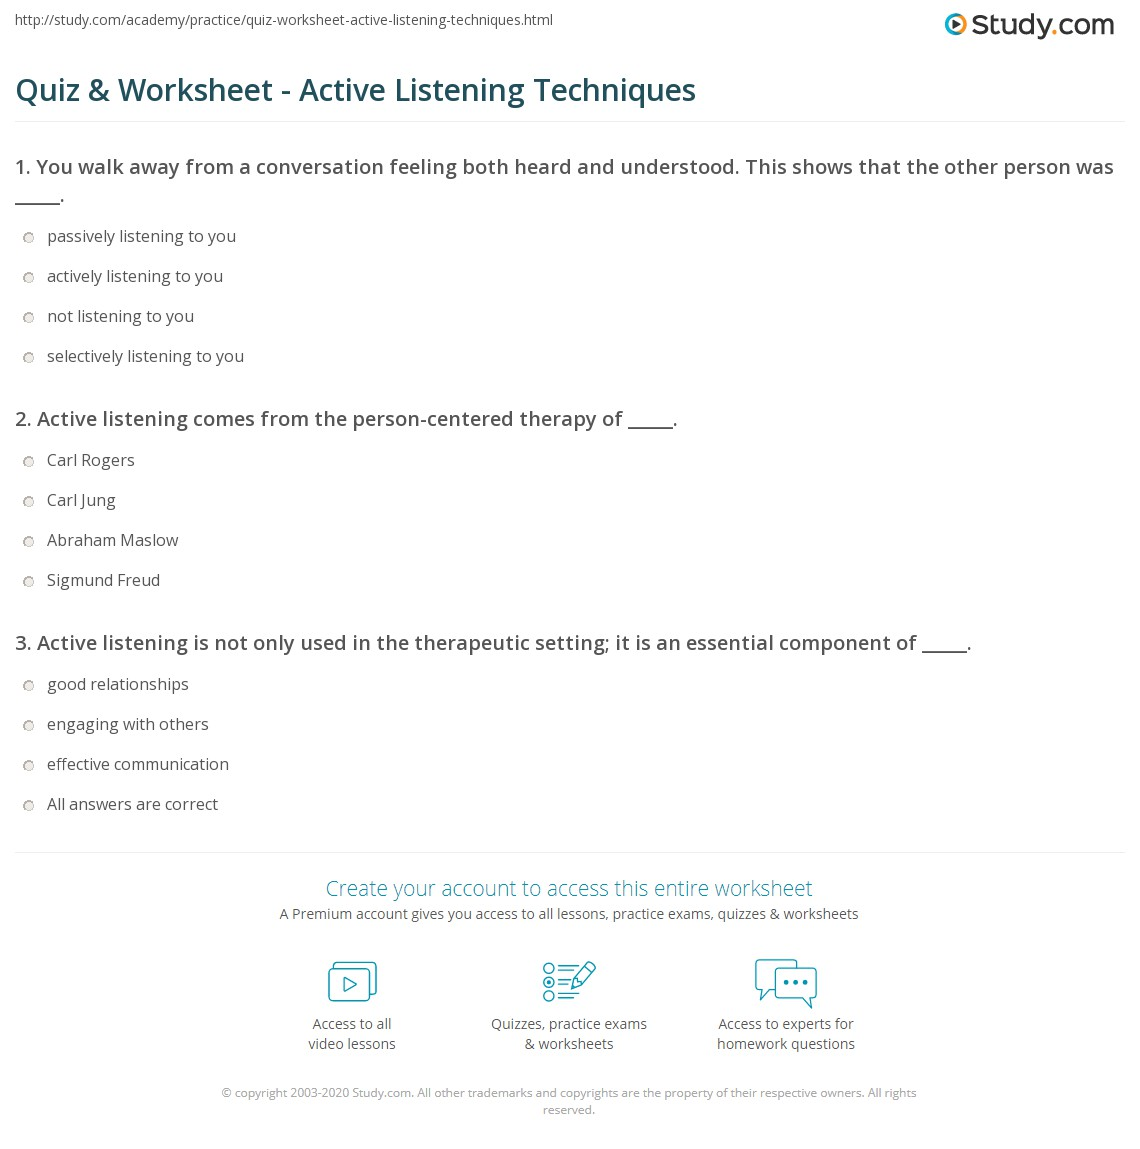 Active Listening Skills Worksheets Worksheets For School - Studioxcess